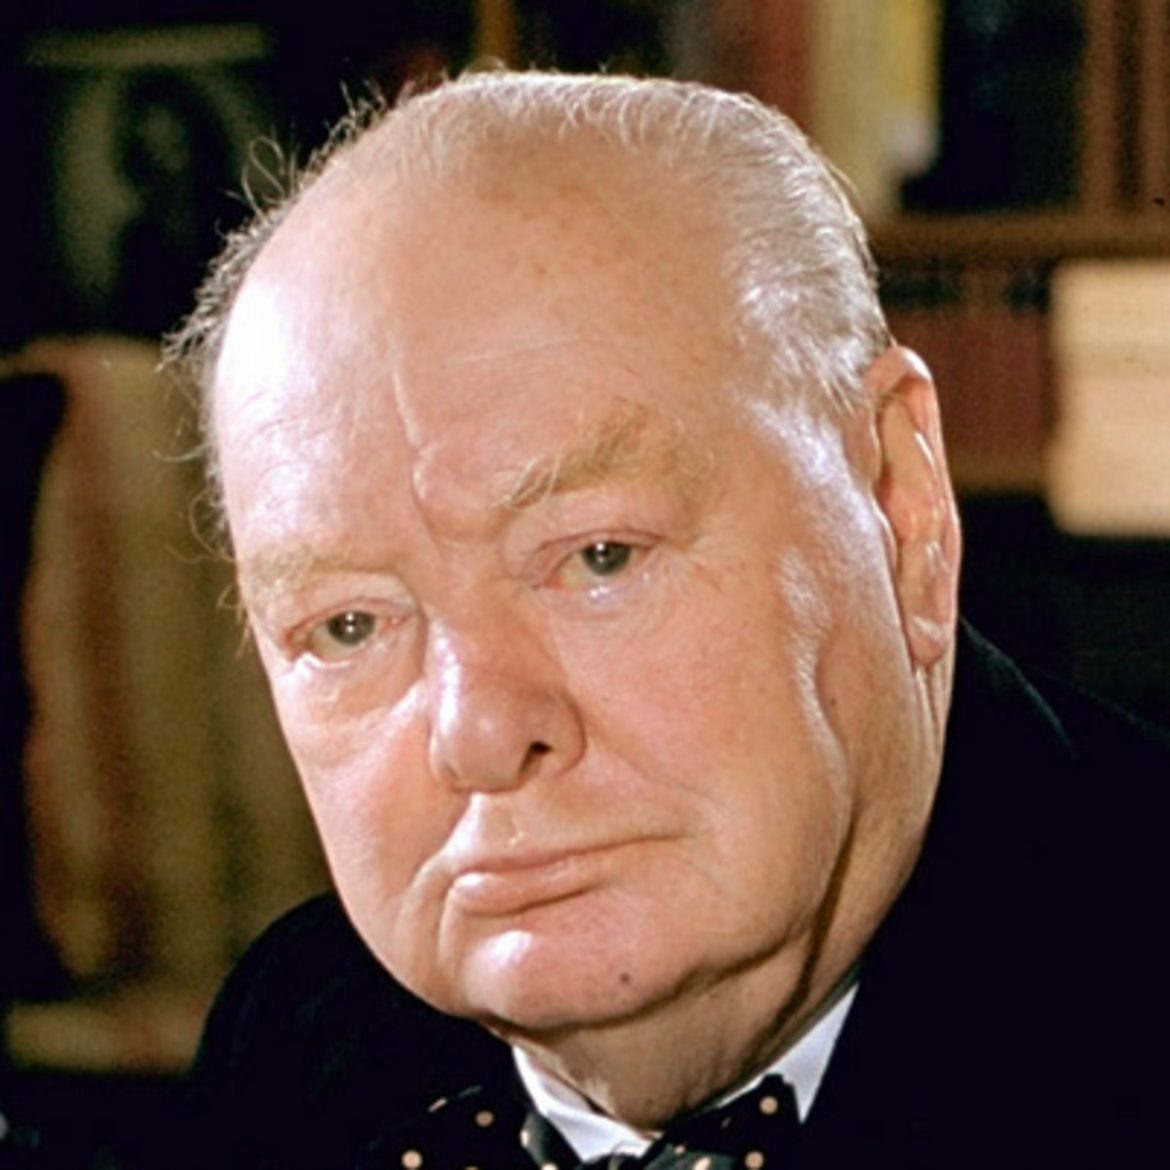 The Independent: Churchill was a politically complex man – but he was certainly a racist